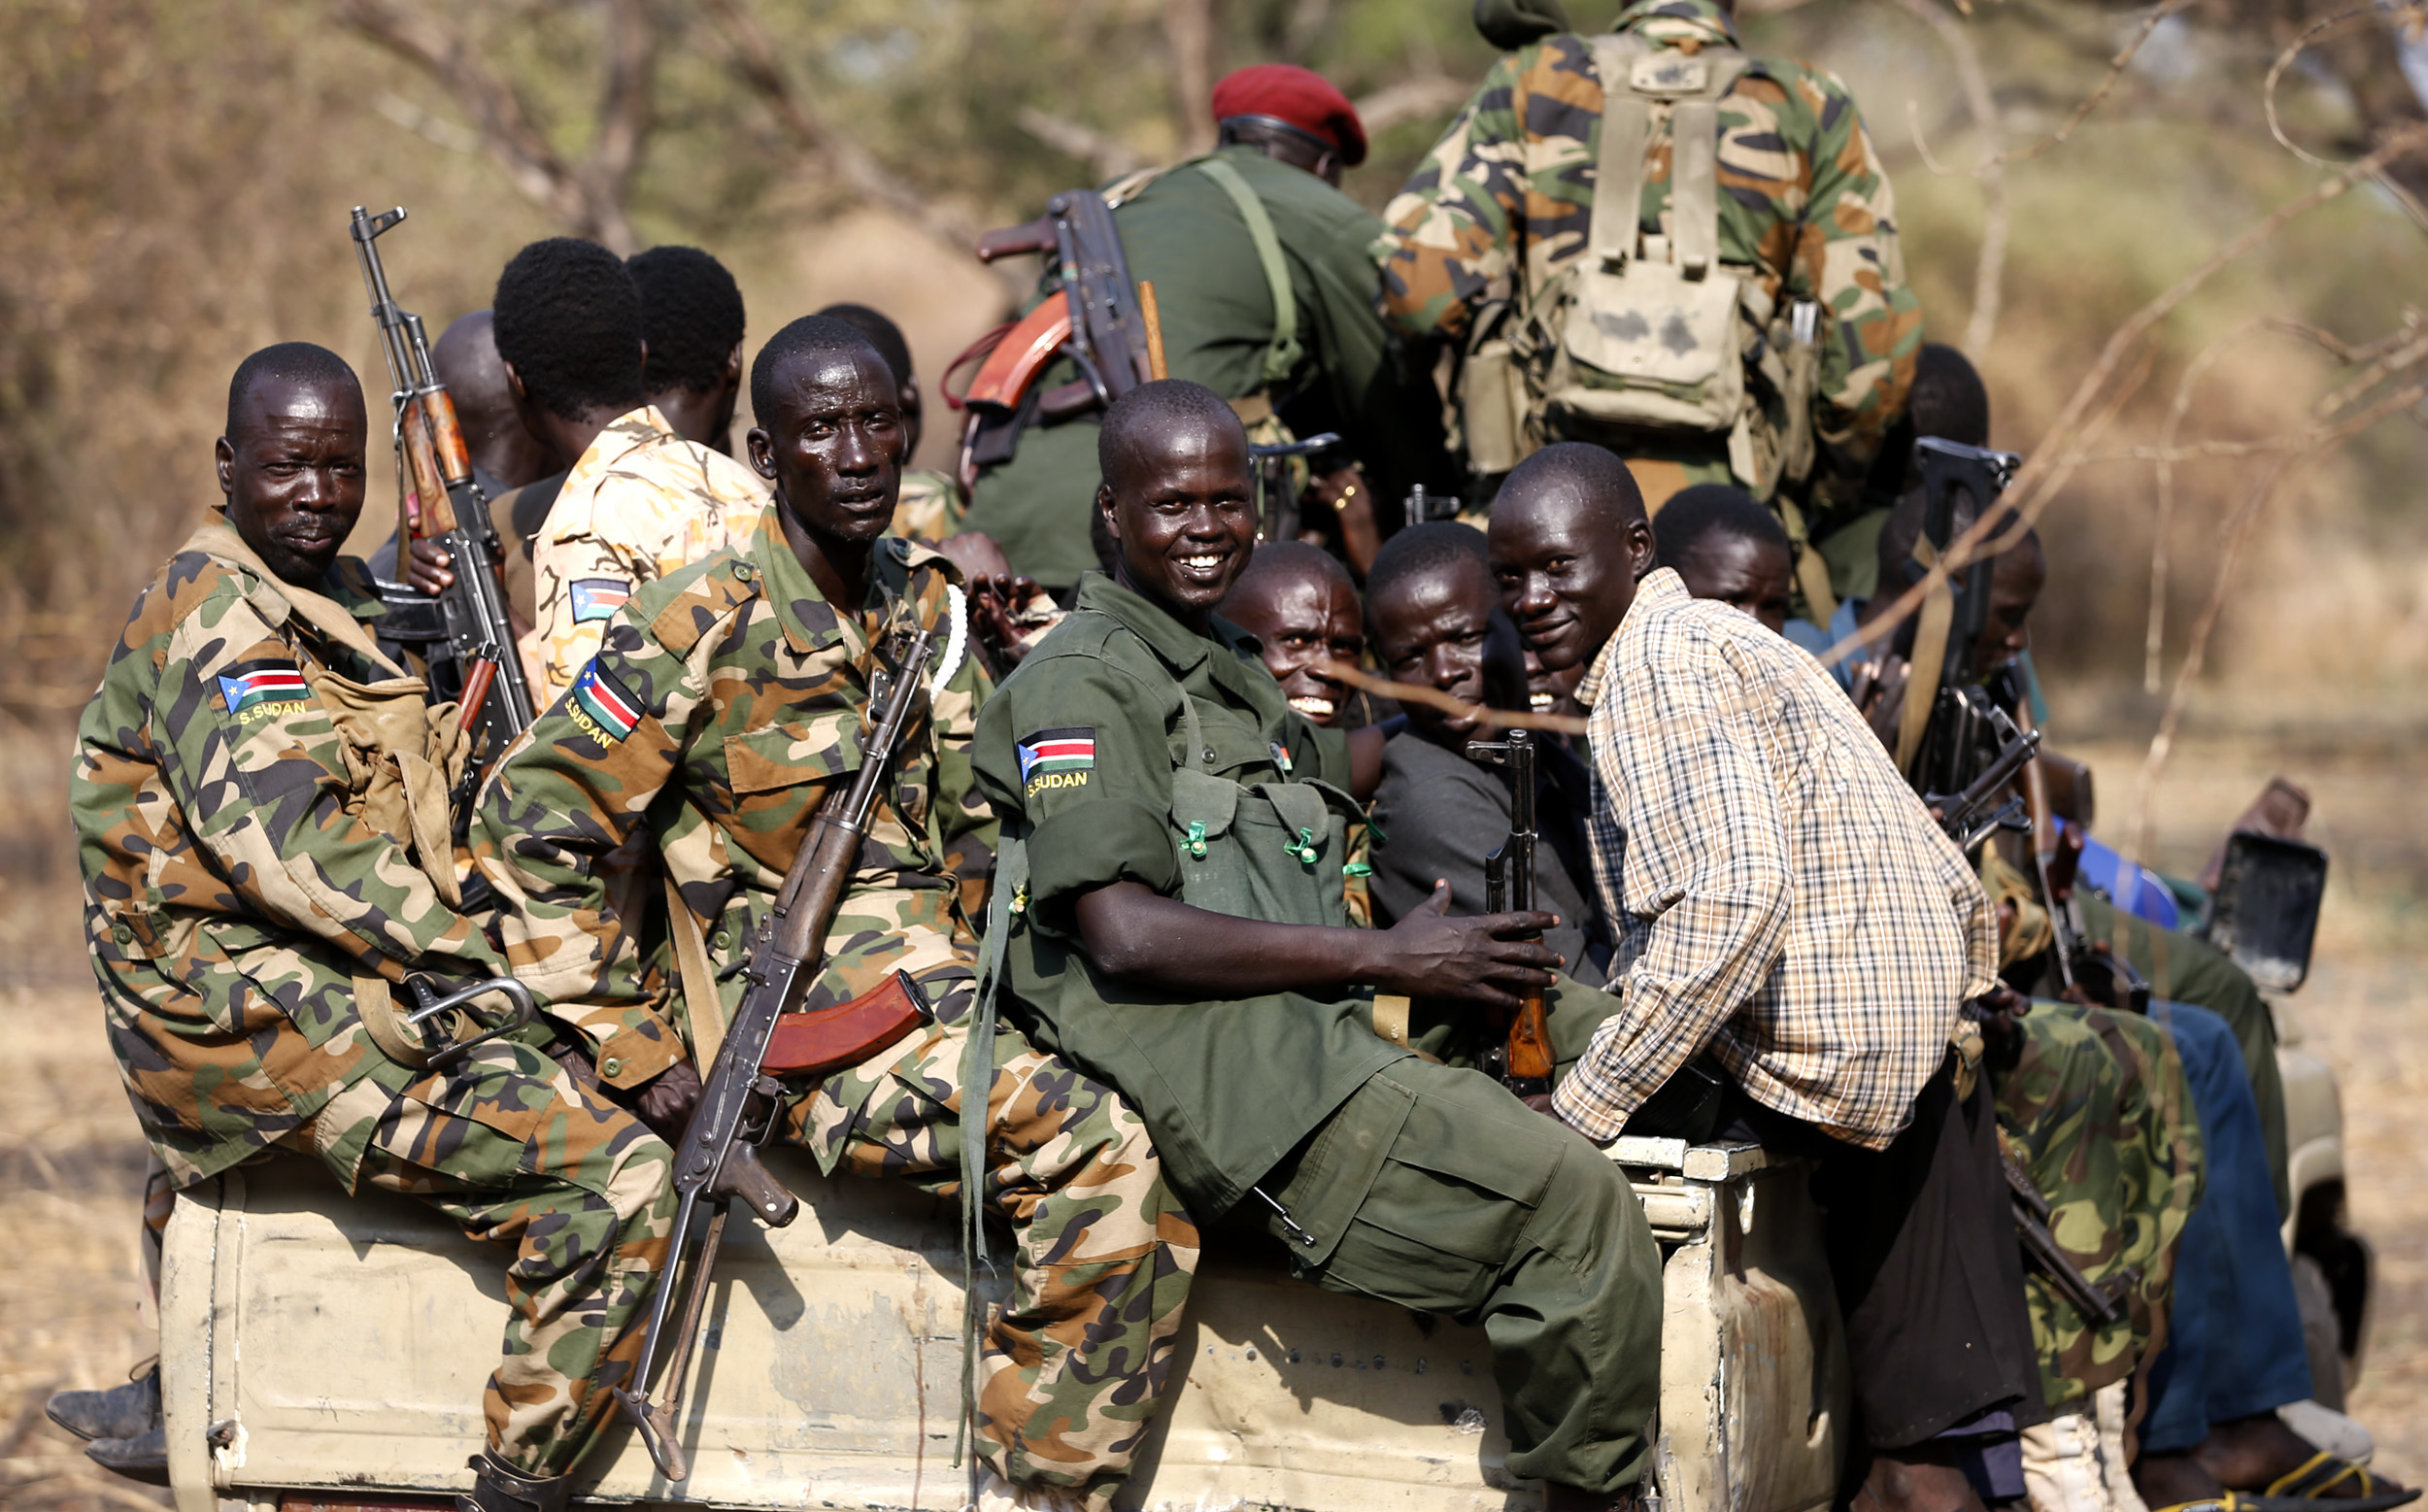 South Sudan's rebels with weapons travel in a truck in a rebel-controlled territory in Jonglei State. Reuters/Goran Tomasevic